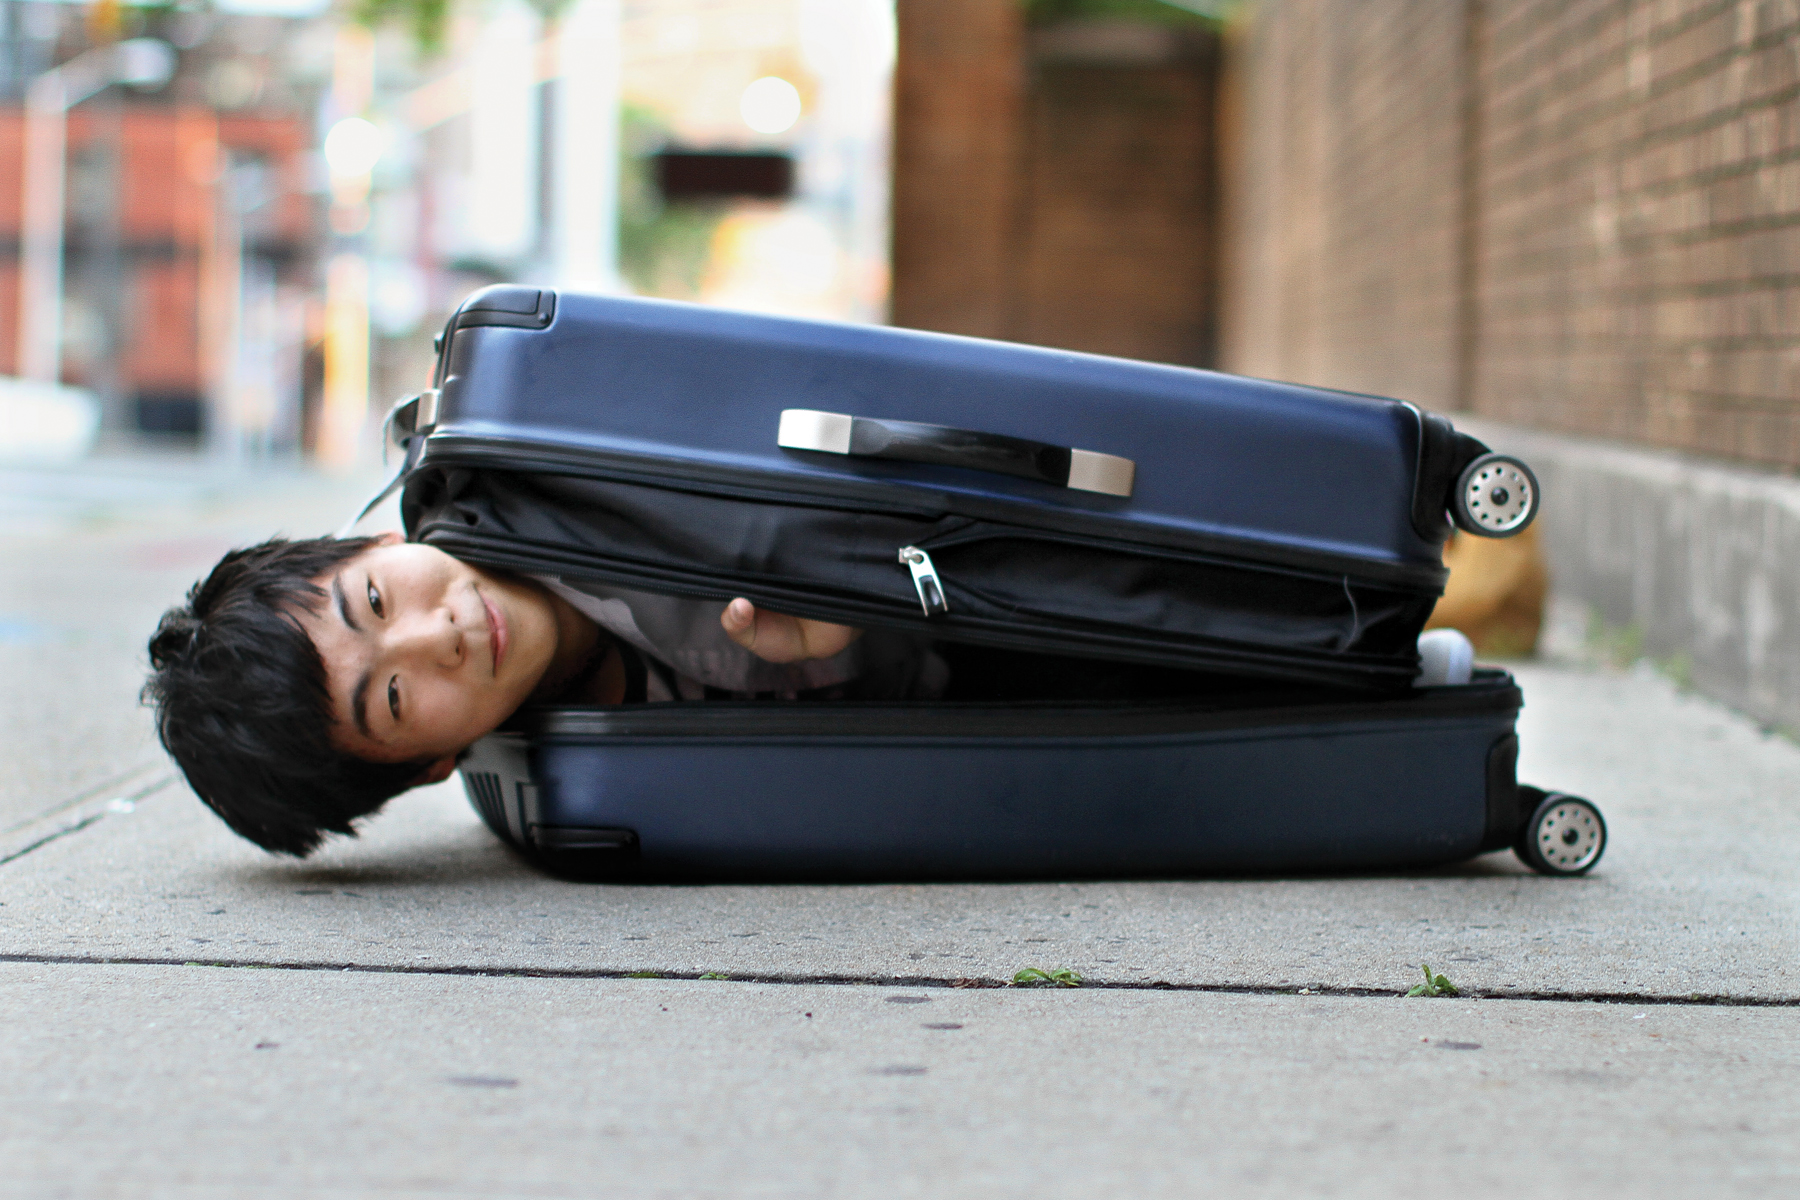 """My girlfriend is staying in an all-women's dorm and I don't have enough money to book a hotel for the entire time that I'm in New York,"" said the subject. ""So we're going to try to sneak me into her dorm in a suitcase."""